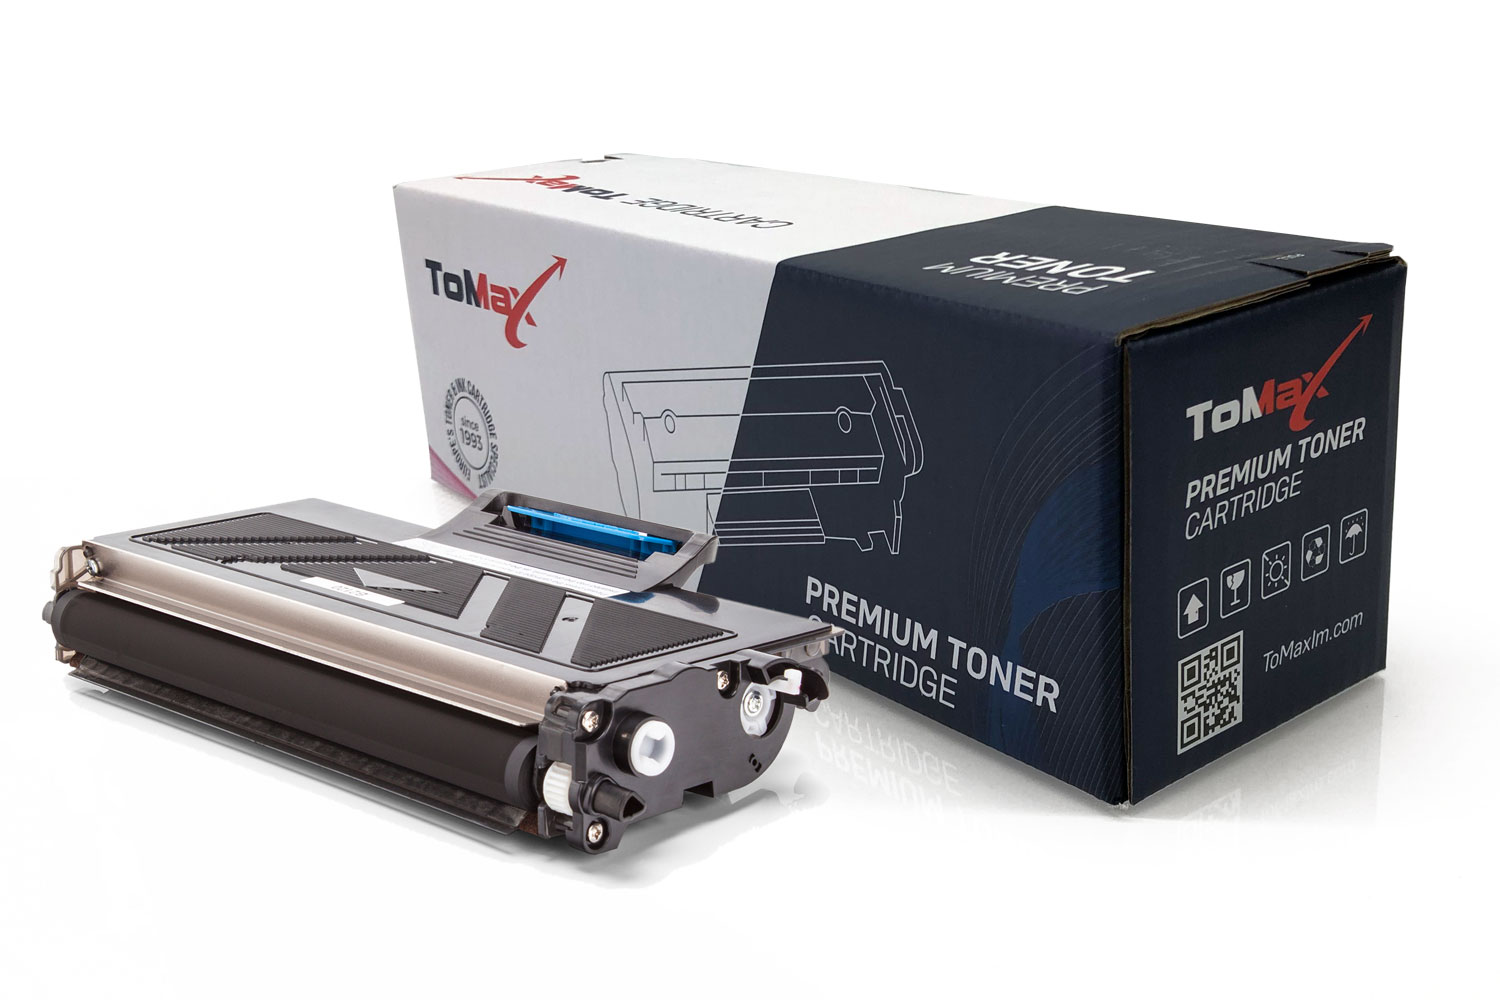 ToMax Premium Toner Cartridge replaces HP CE312A / 126A Yellow